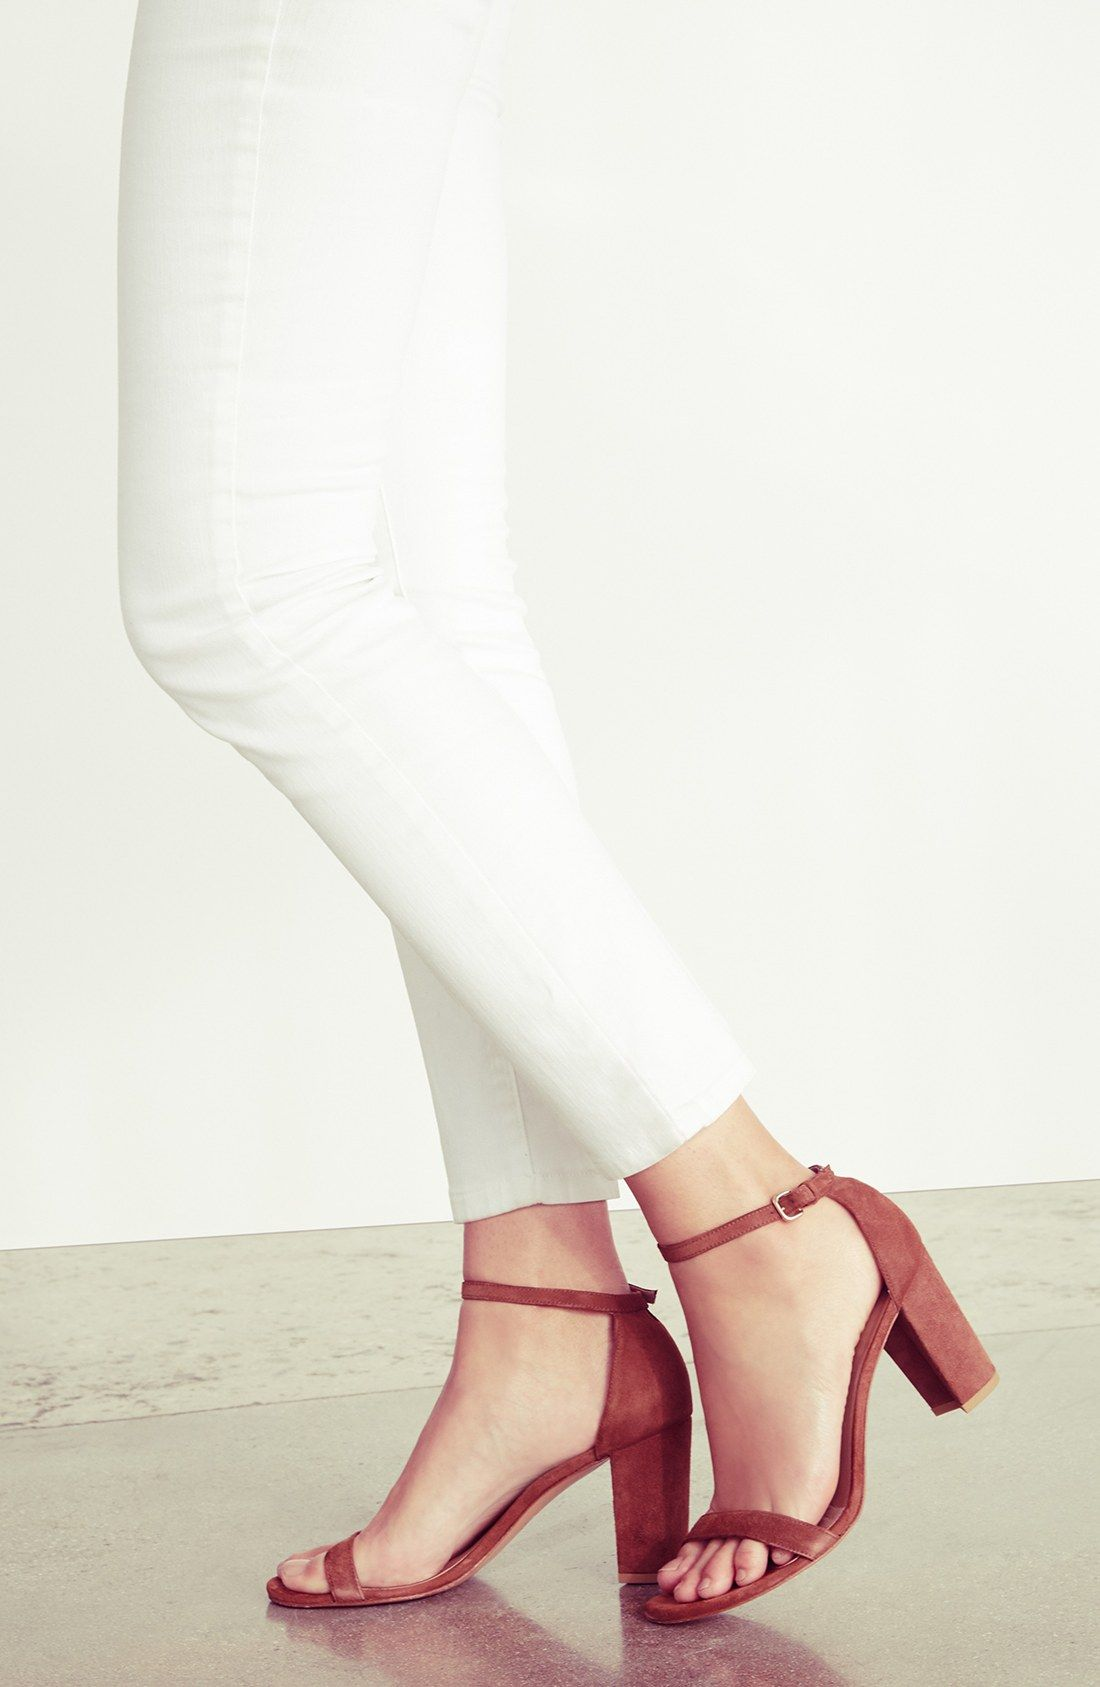 65e9505778 Stuart Weitzman 'NearlyNude' Ankle Strap Sandal (Women) | Outfit ...